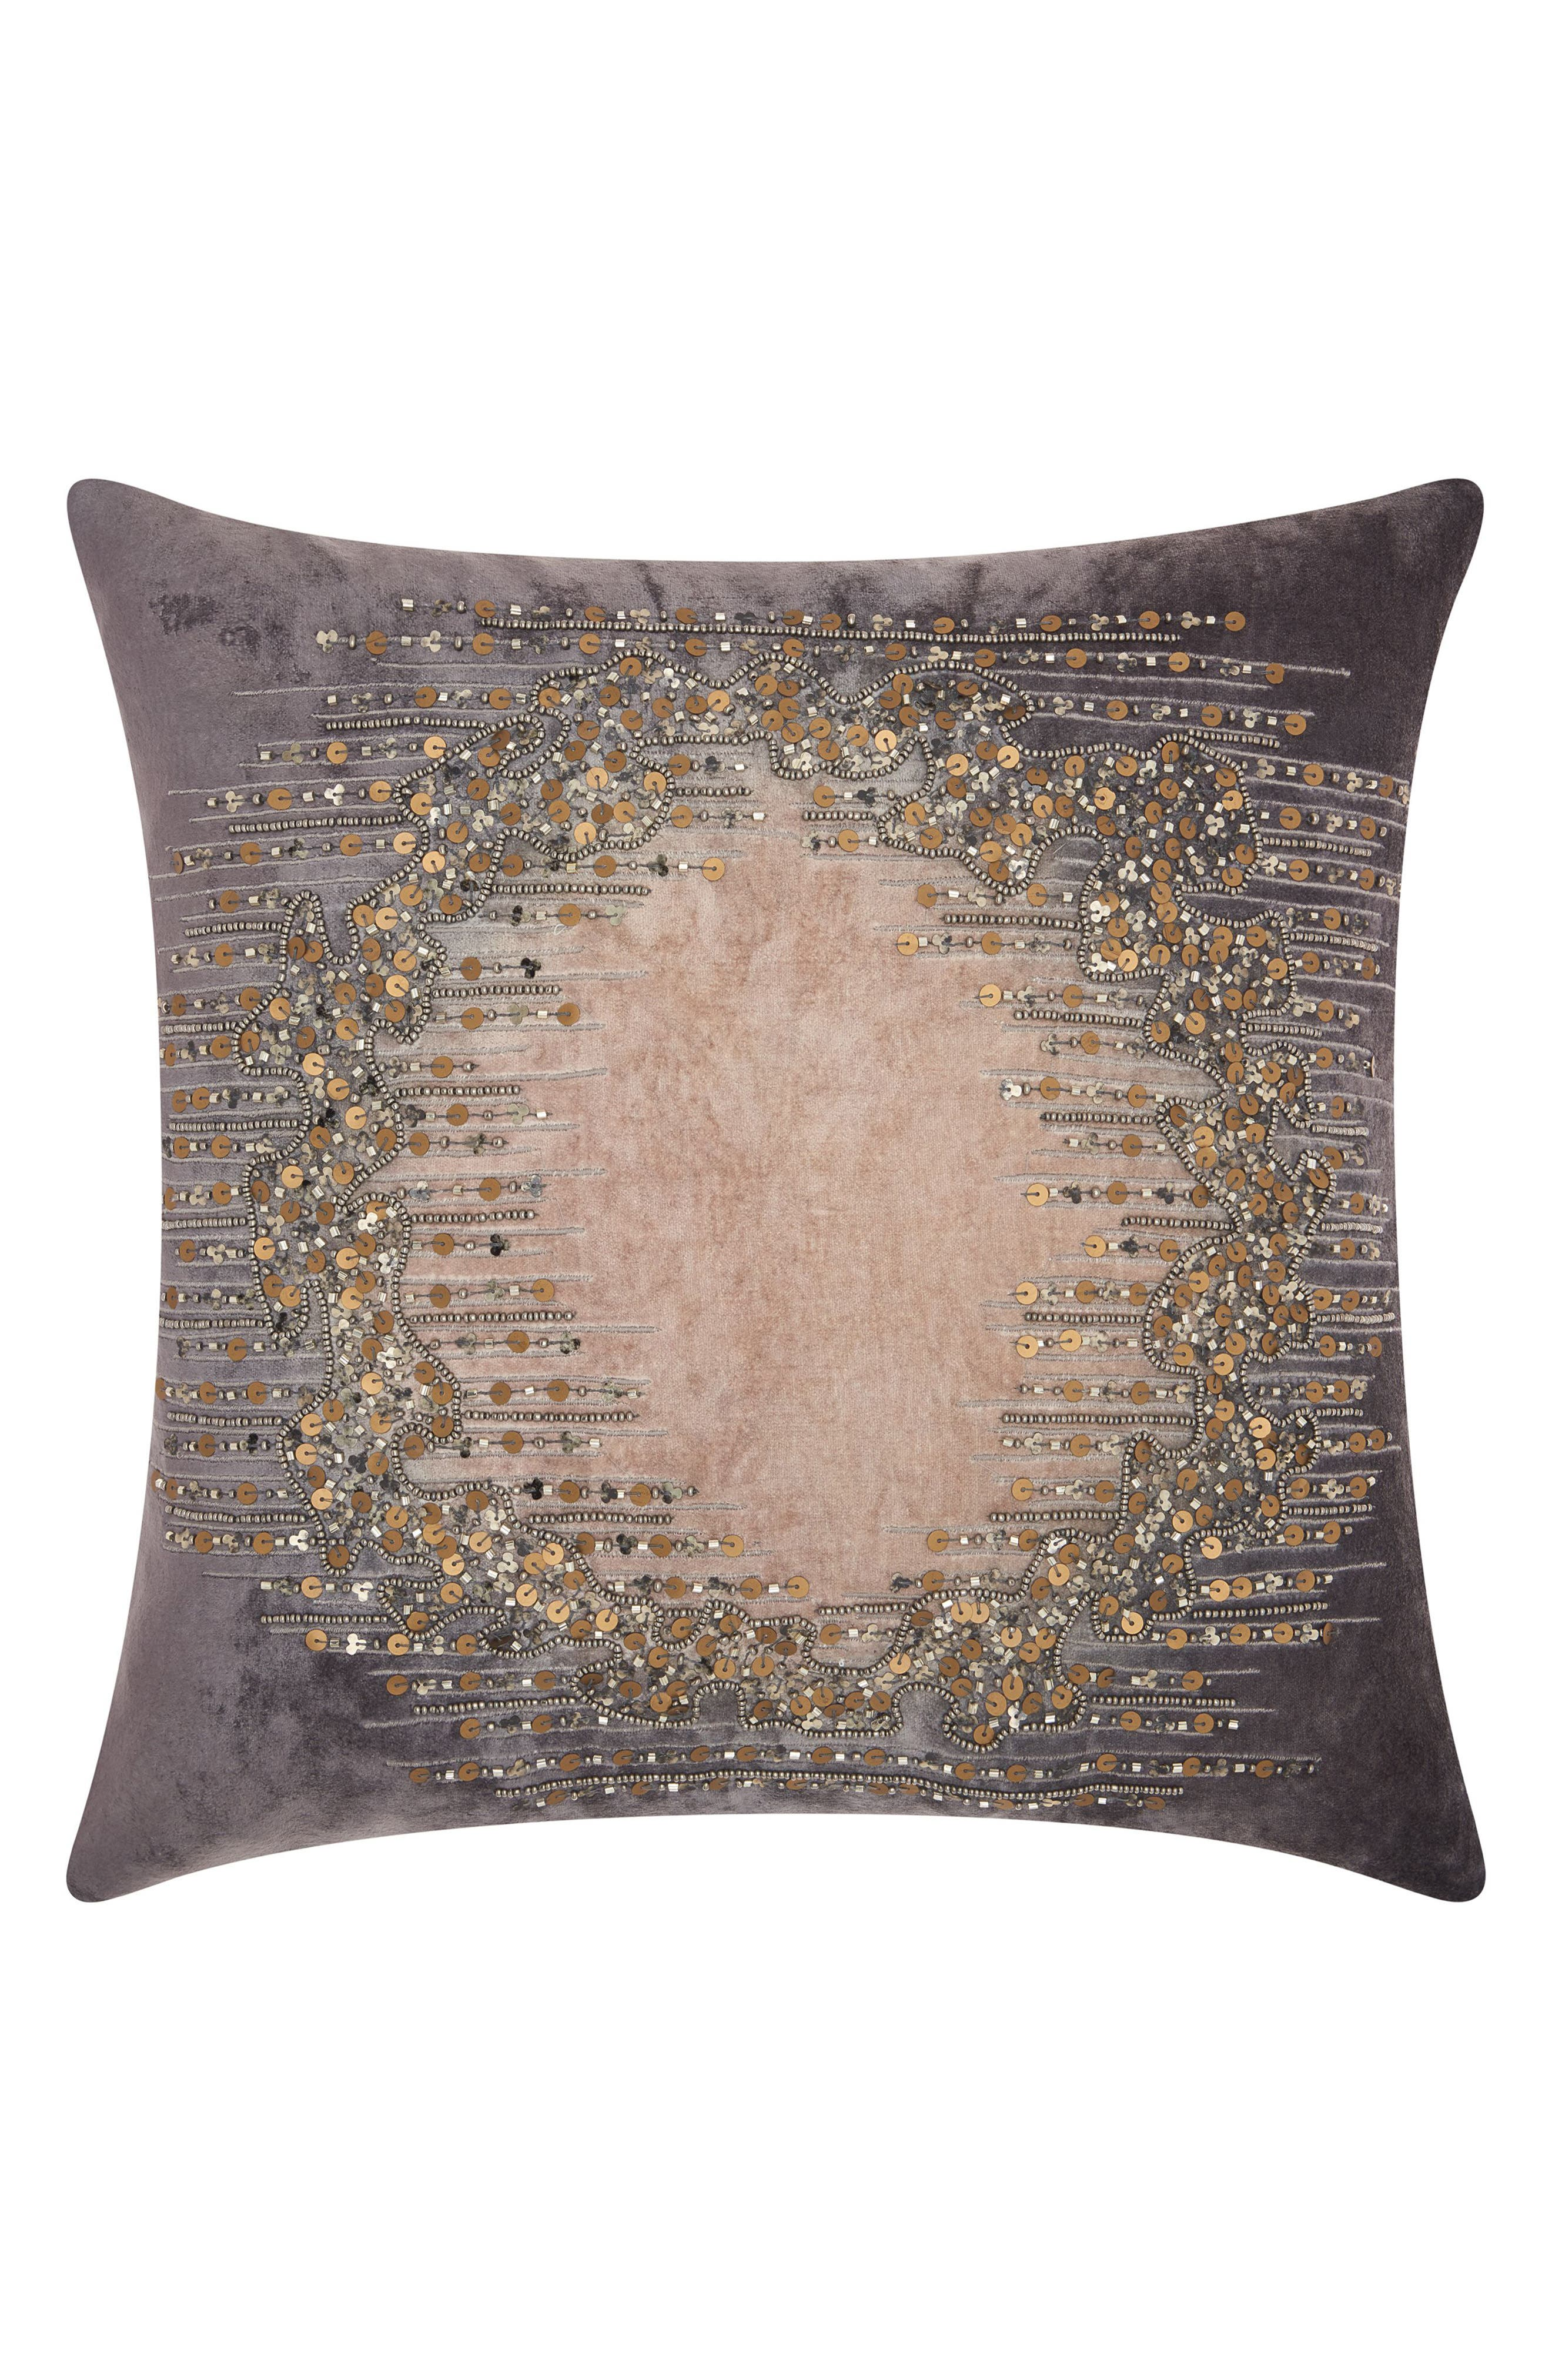 Mina Victory Lunar Reflections Accent Pillow